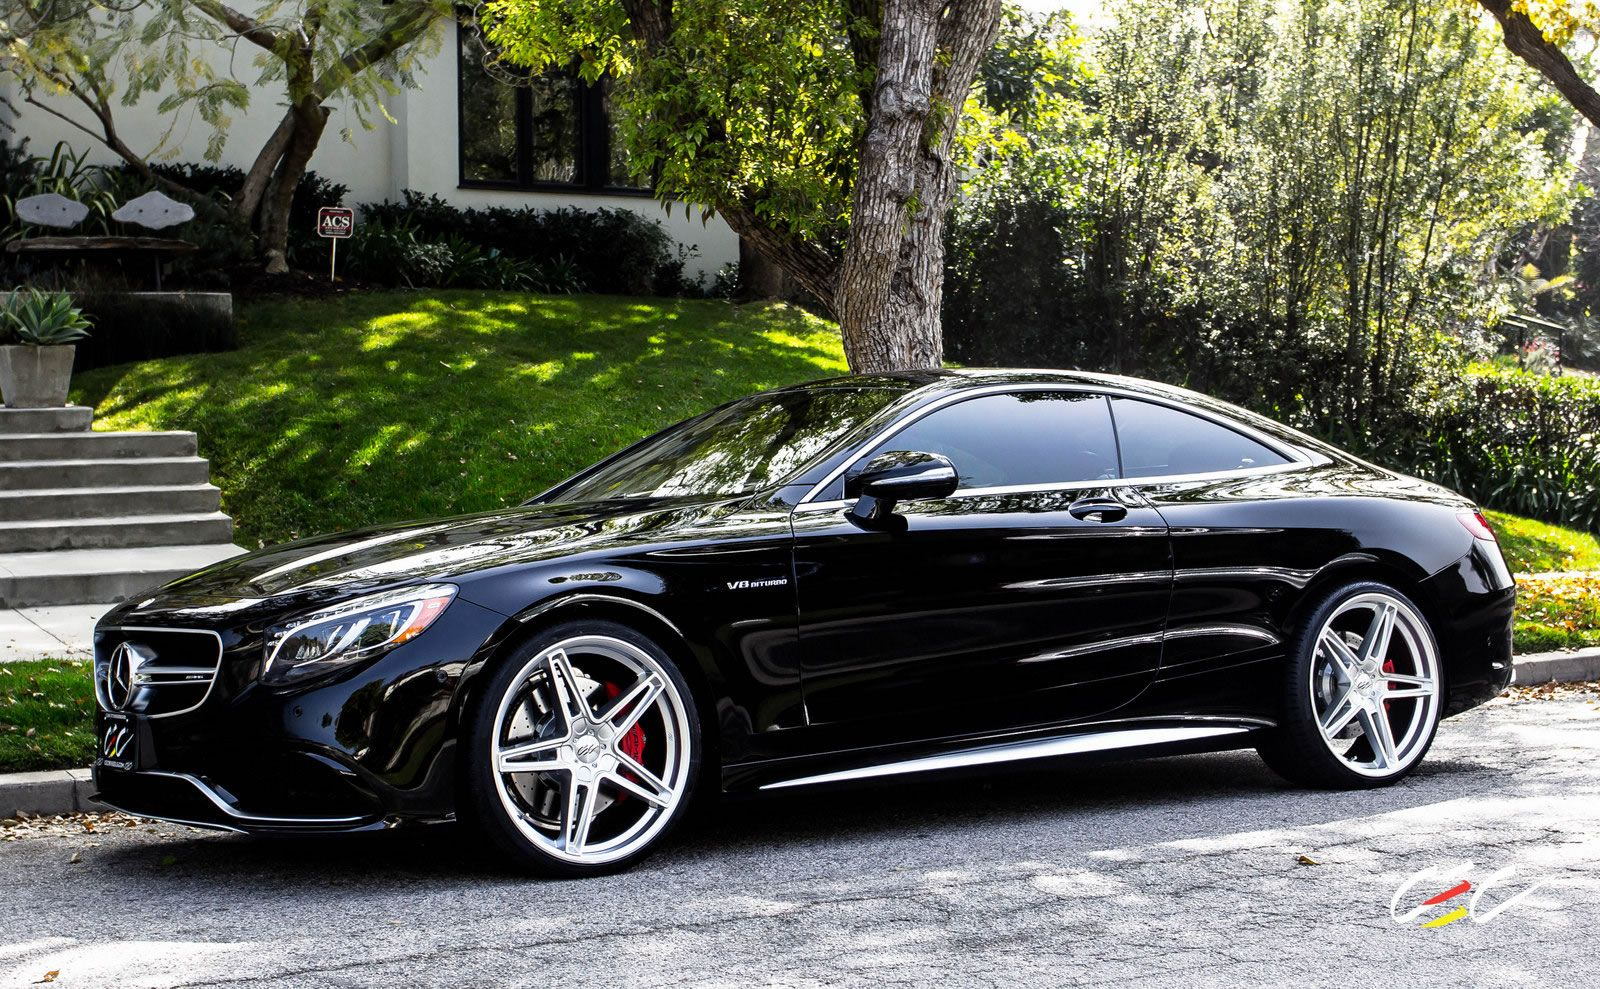 Mercedes benz s63 amg coupe with staggered 22 s class for Mercedes benz s63 amg coupe price